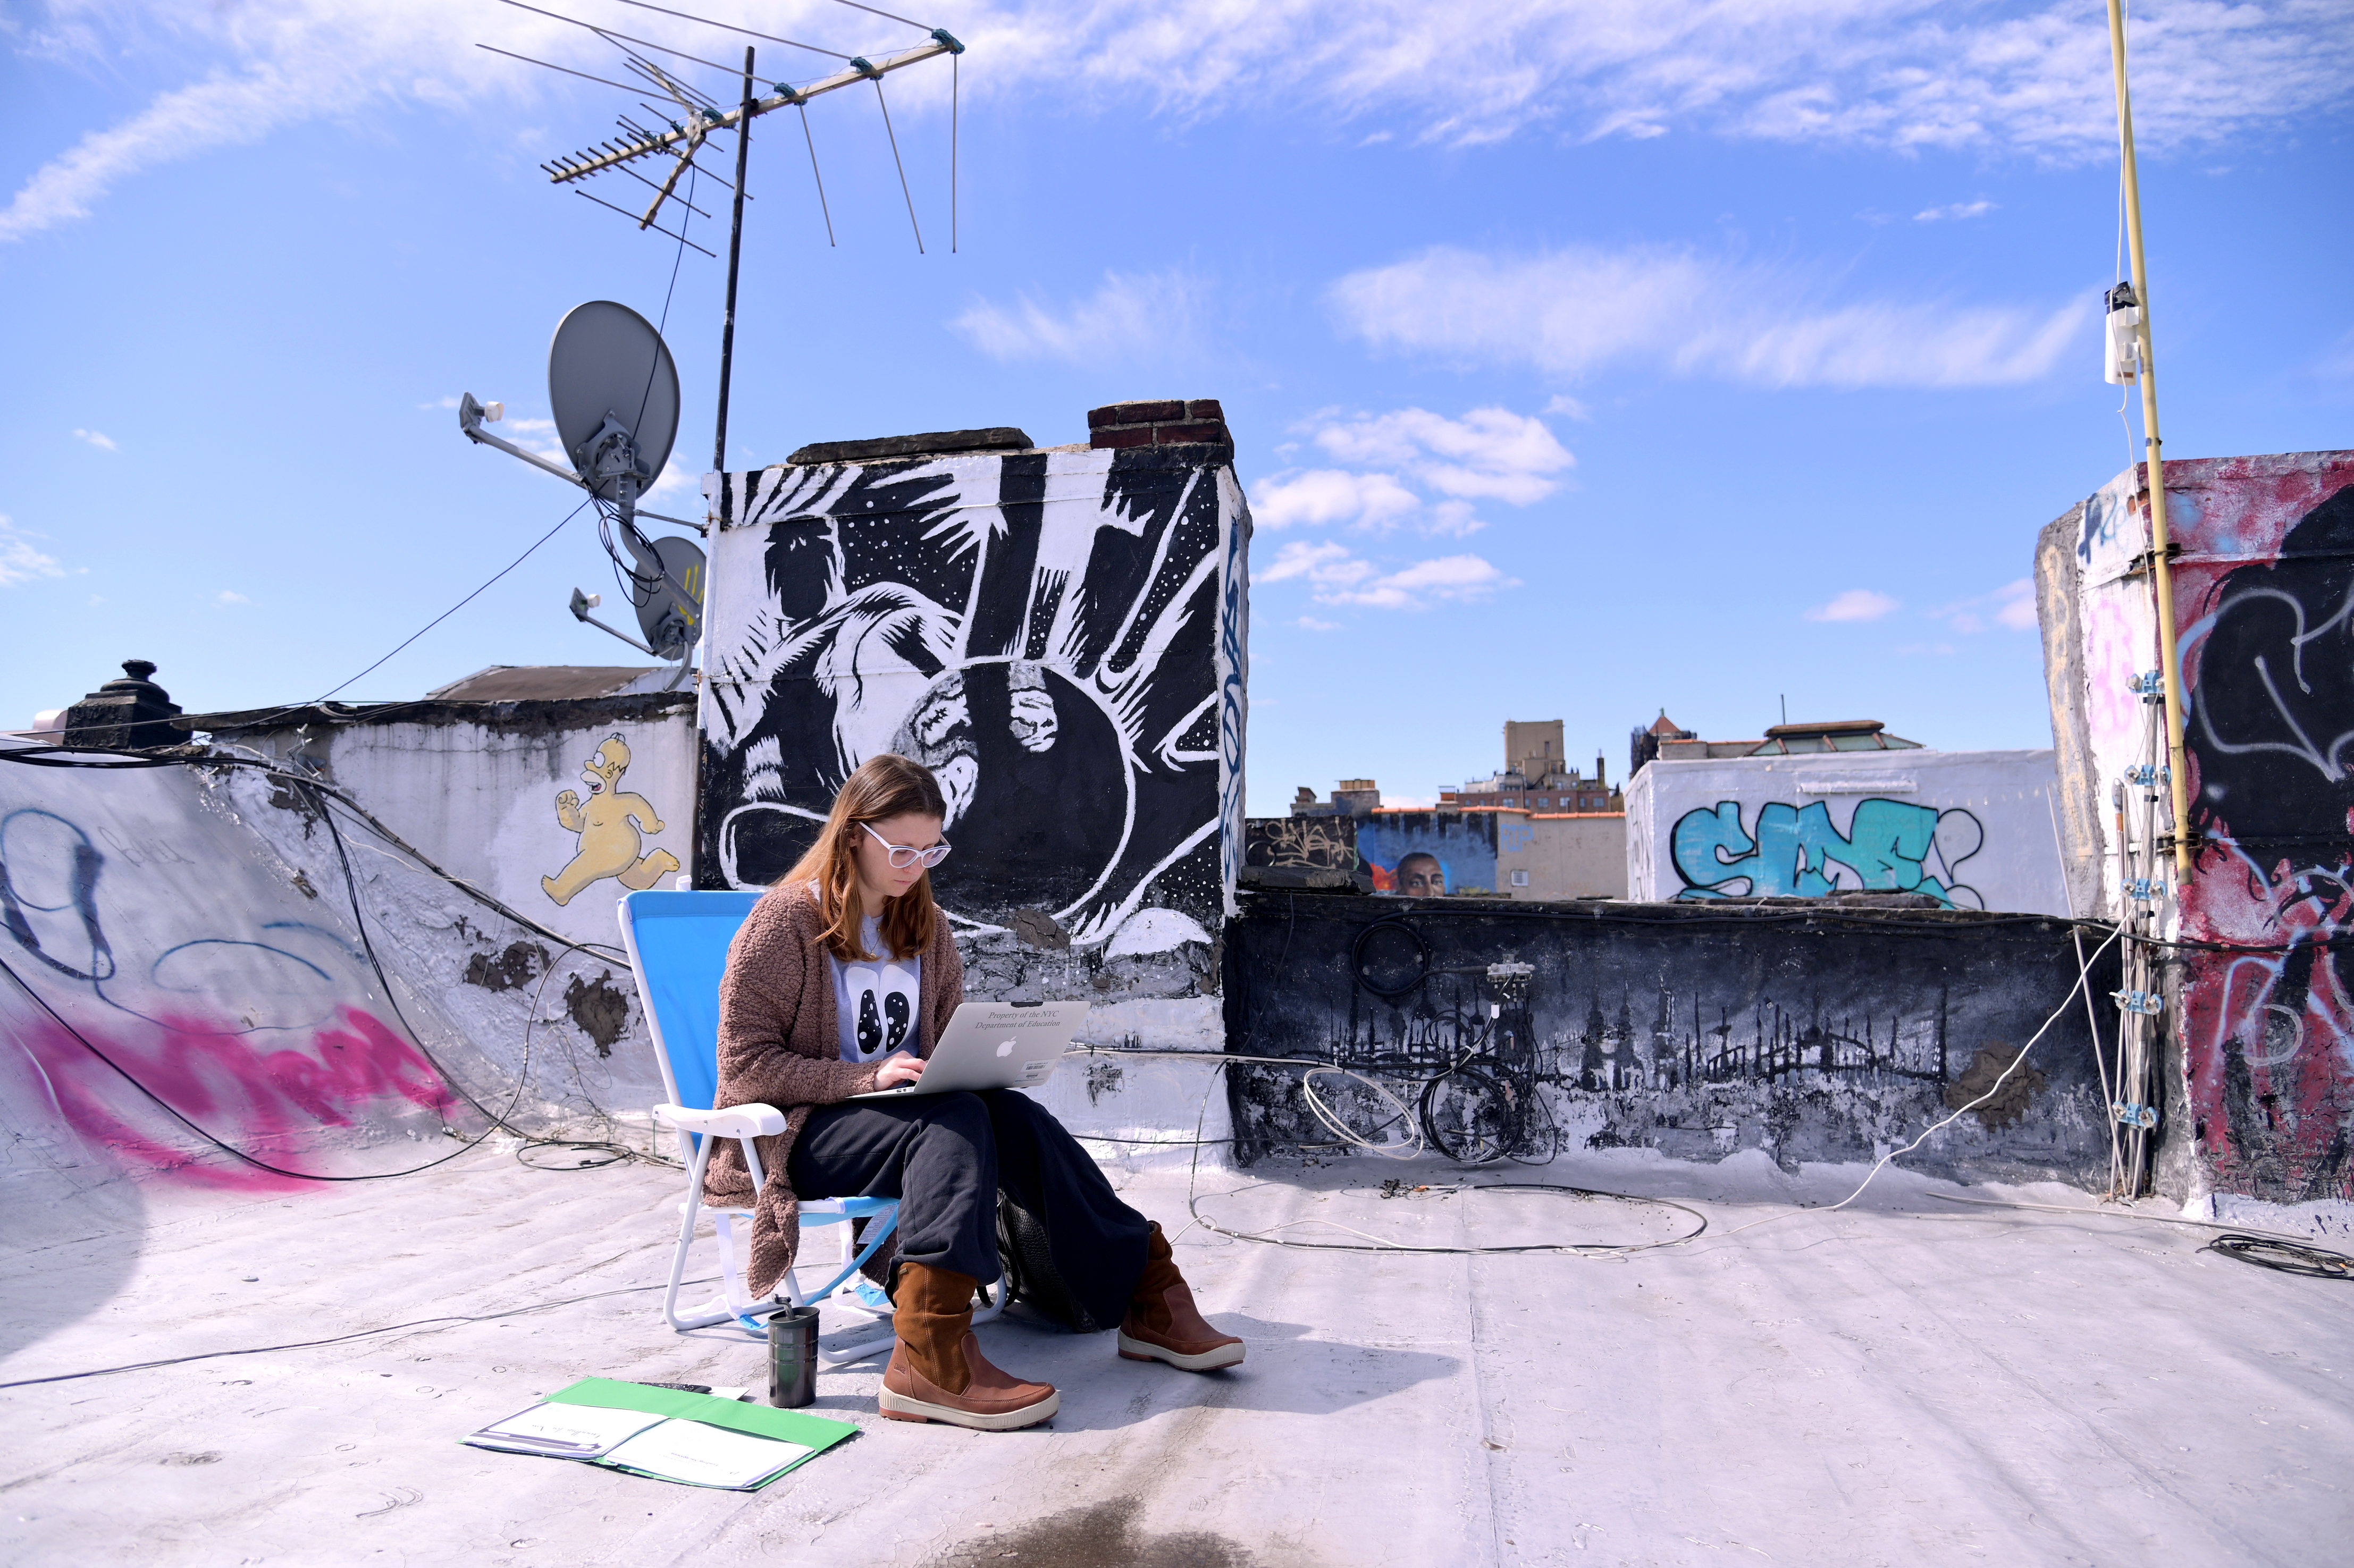 A woman uses a laptop on a roof in New York City.